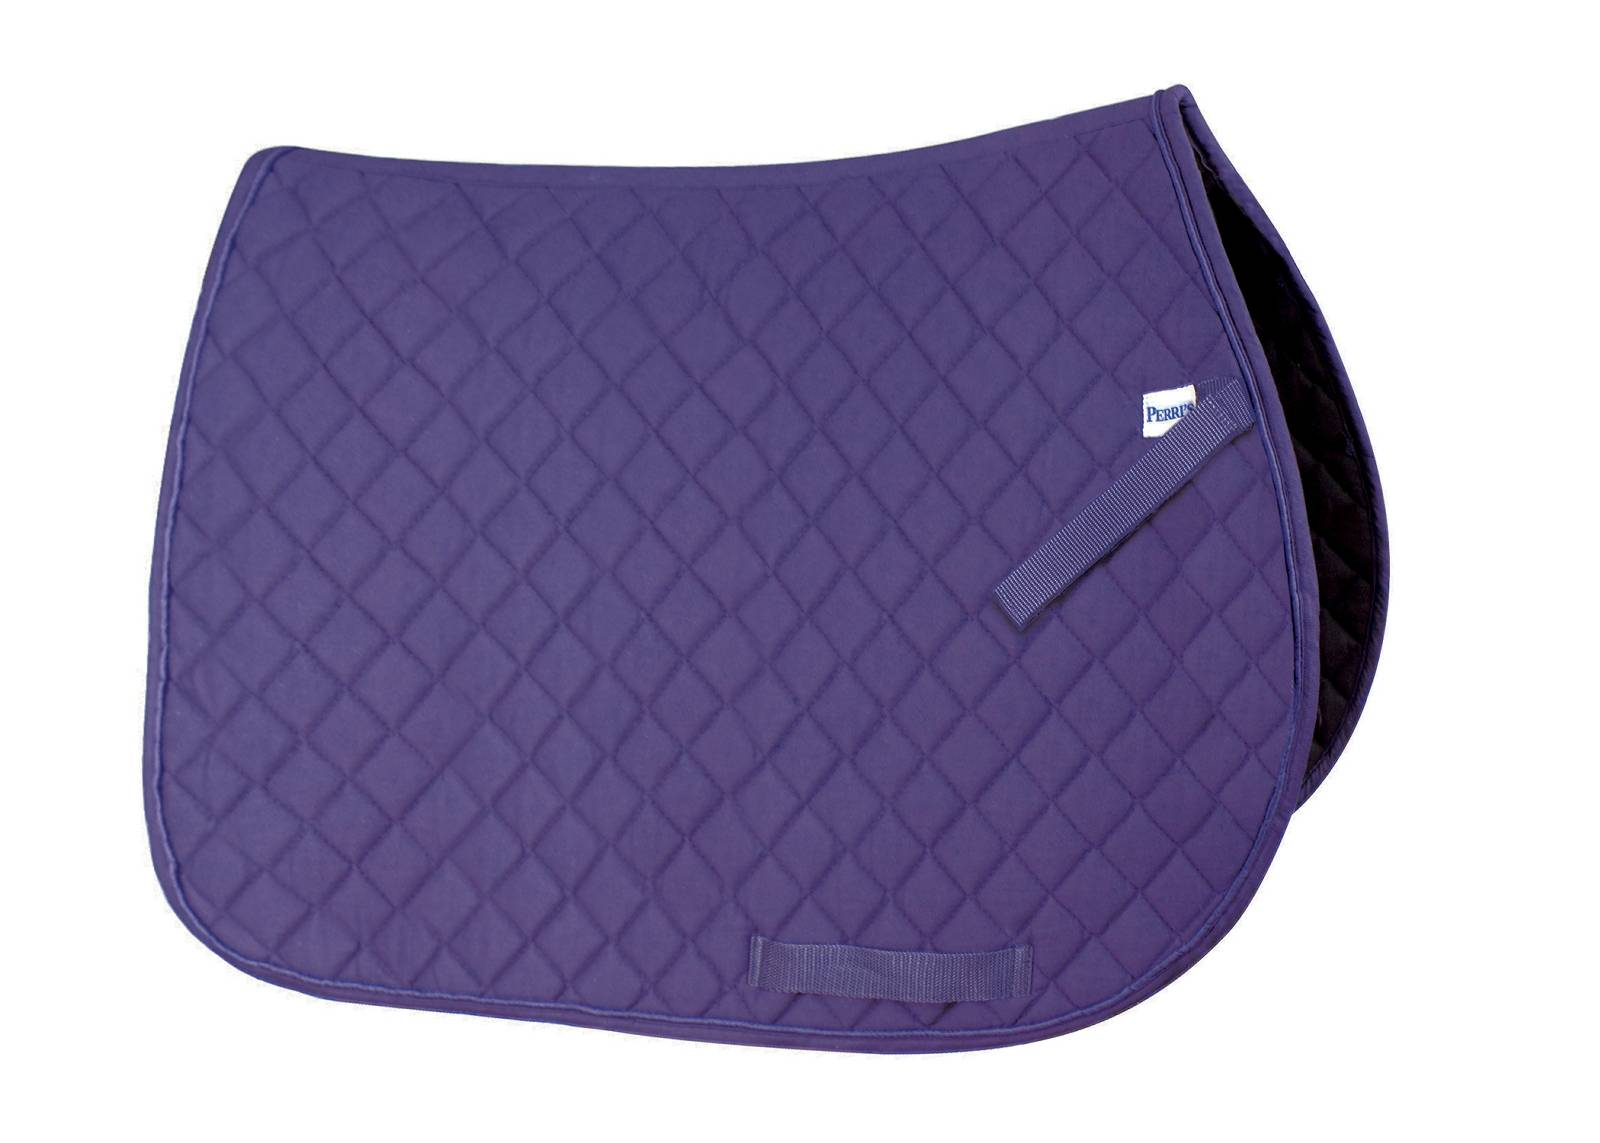 Perri's Pony Everyday Saddle Pad - Pony